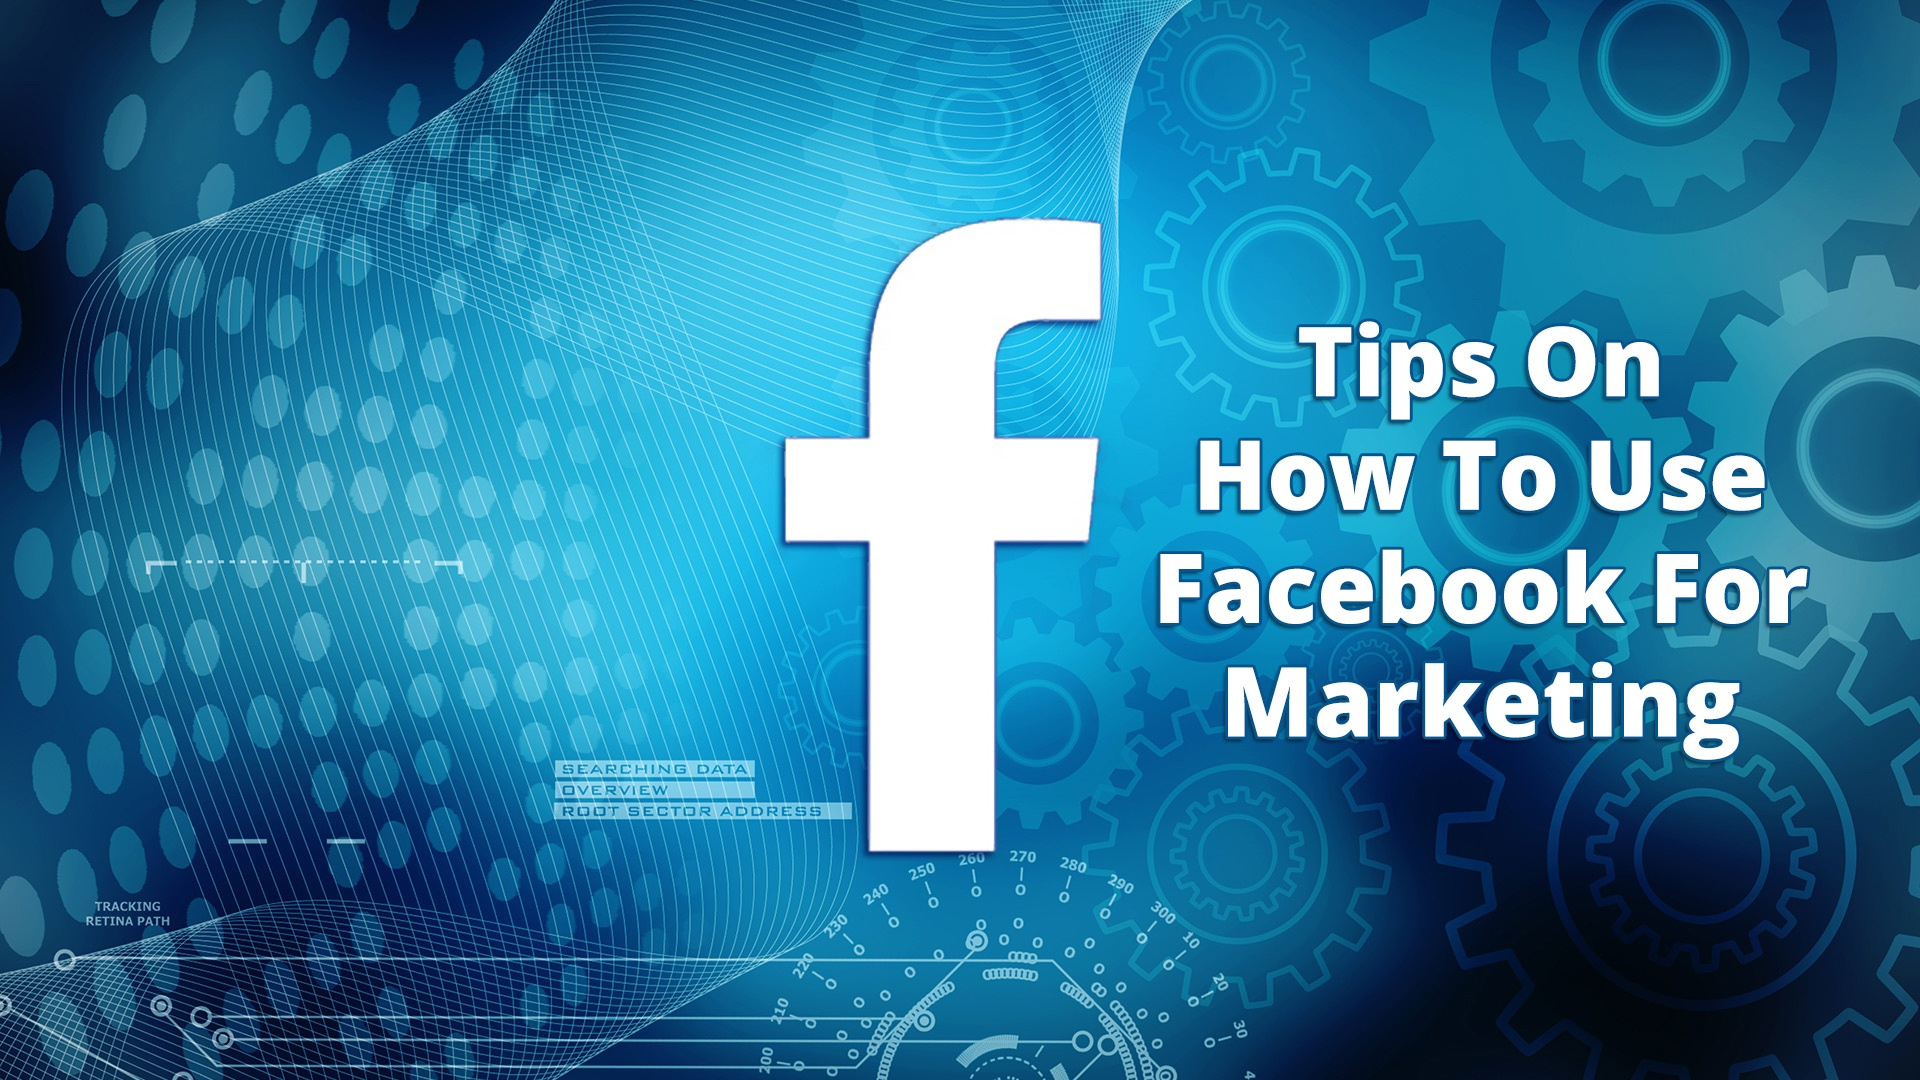 Tips On How To Use Facebook For Marketing